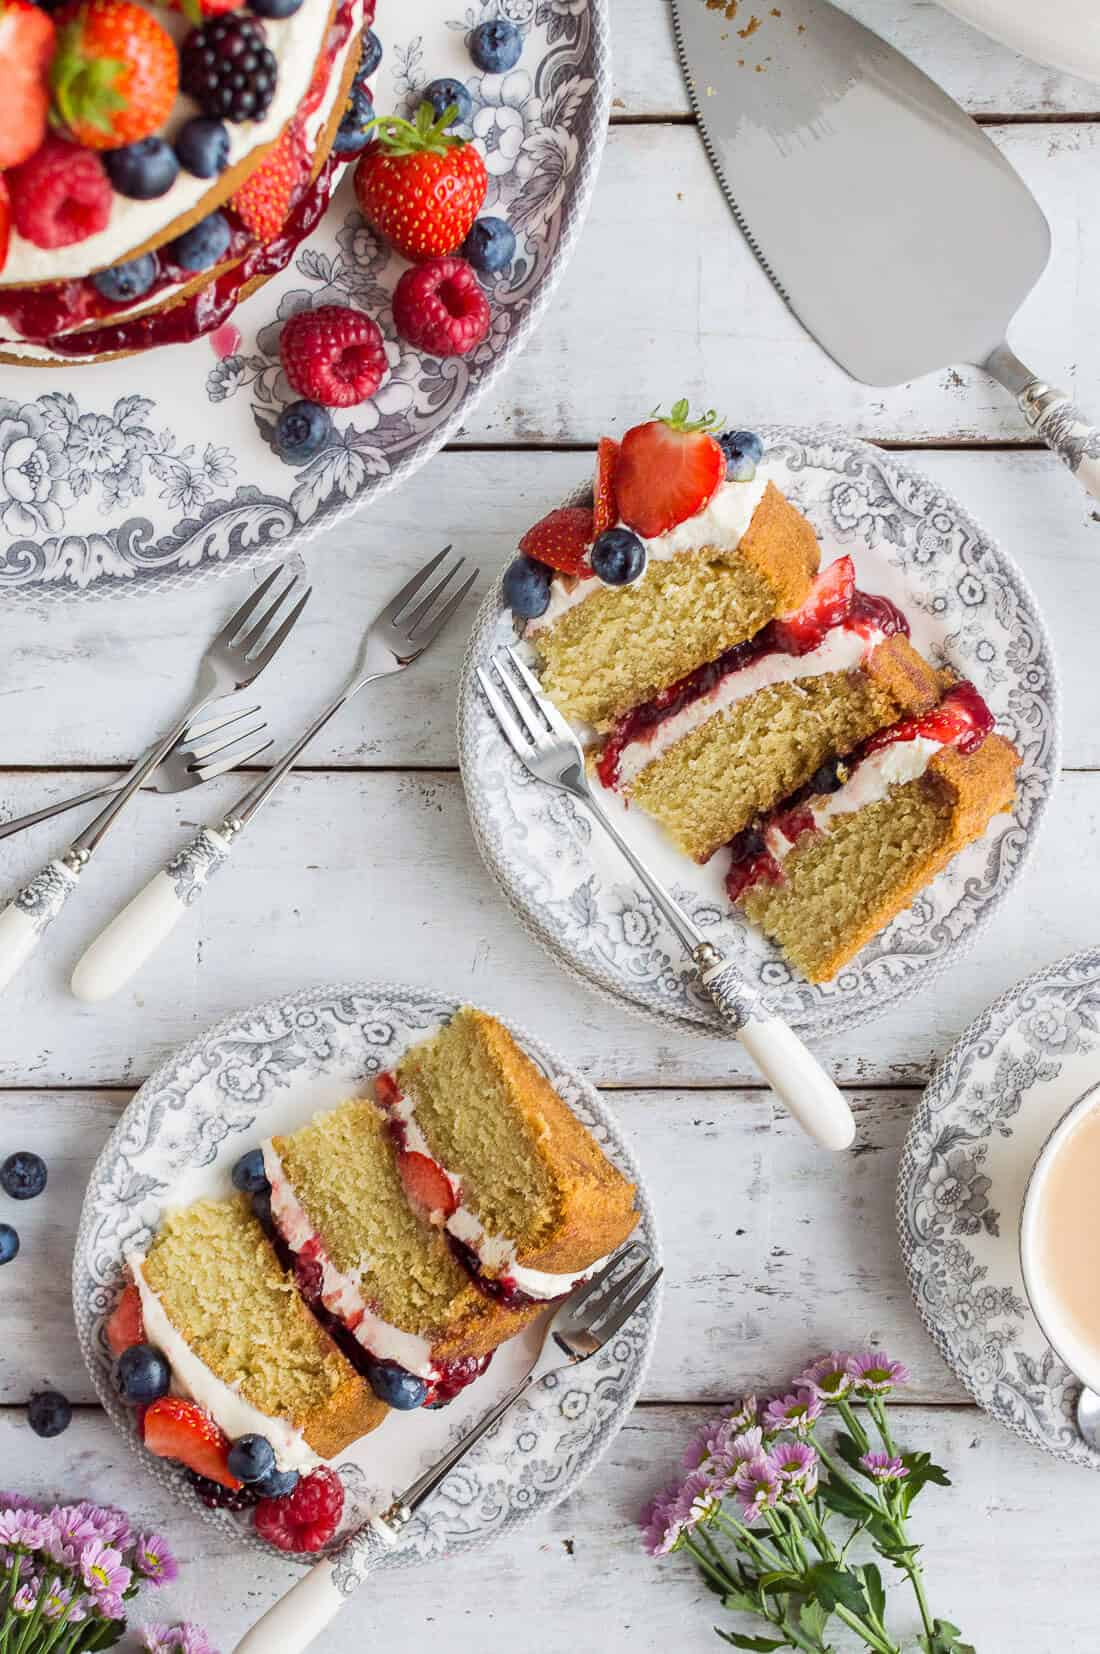 Slices of vegan vanilla cake with vanilla buttercream, berries and jam on grey plates on a white wooden background.